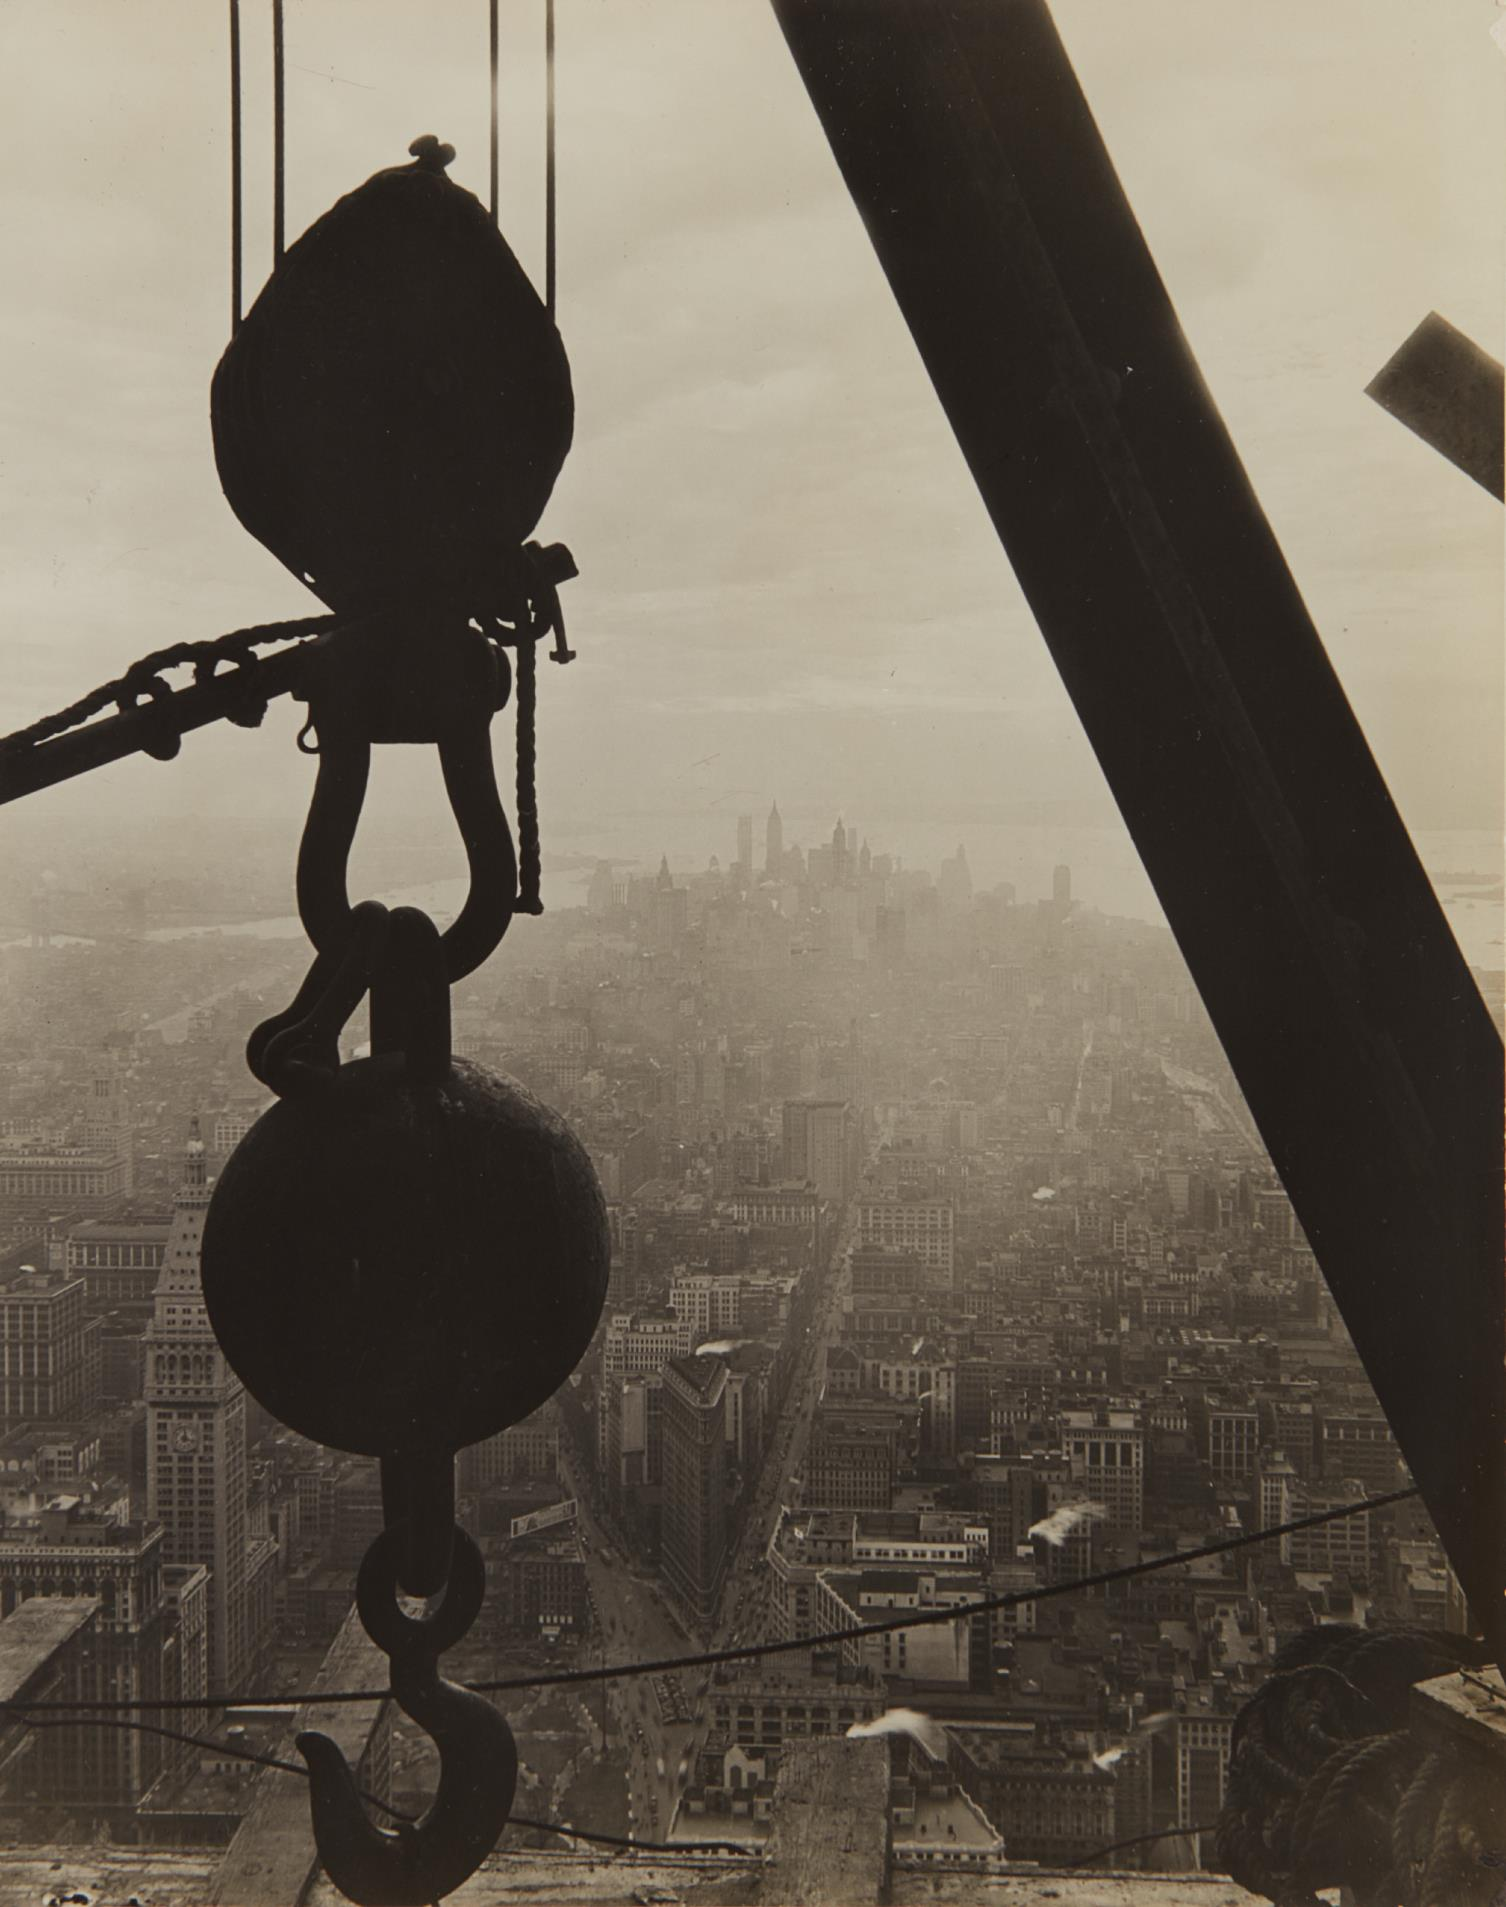 Lewis Wickes Hine-The view onto Lower Manhattan from the Empire State Building-1930